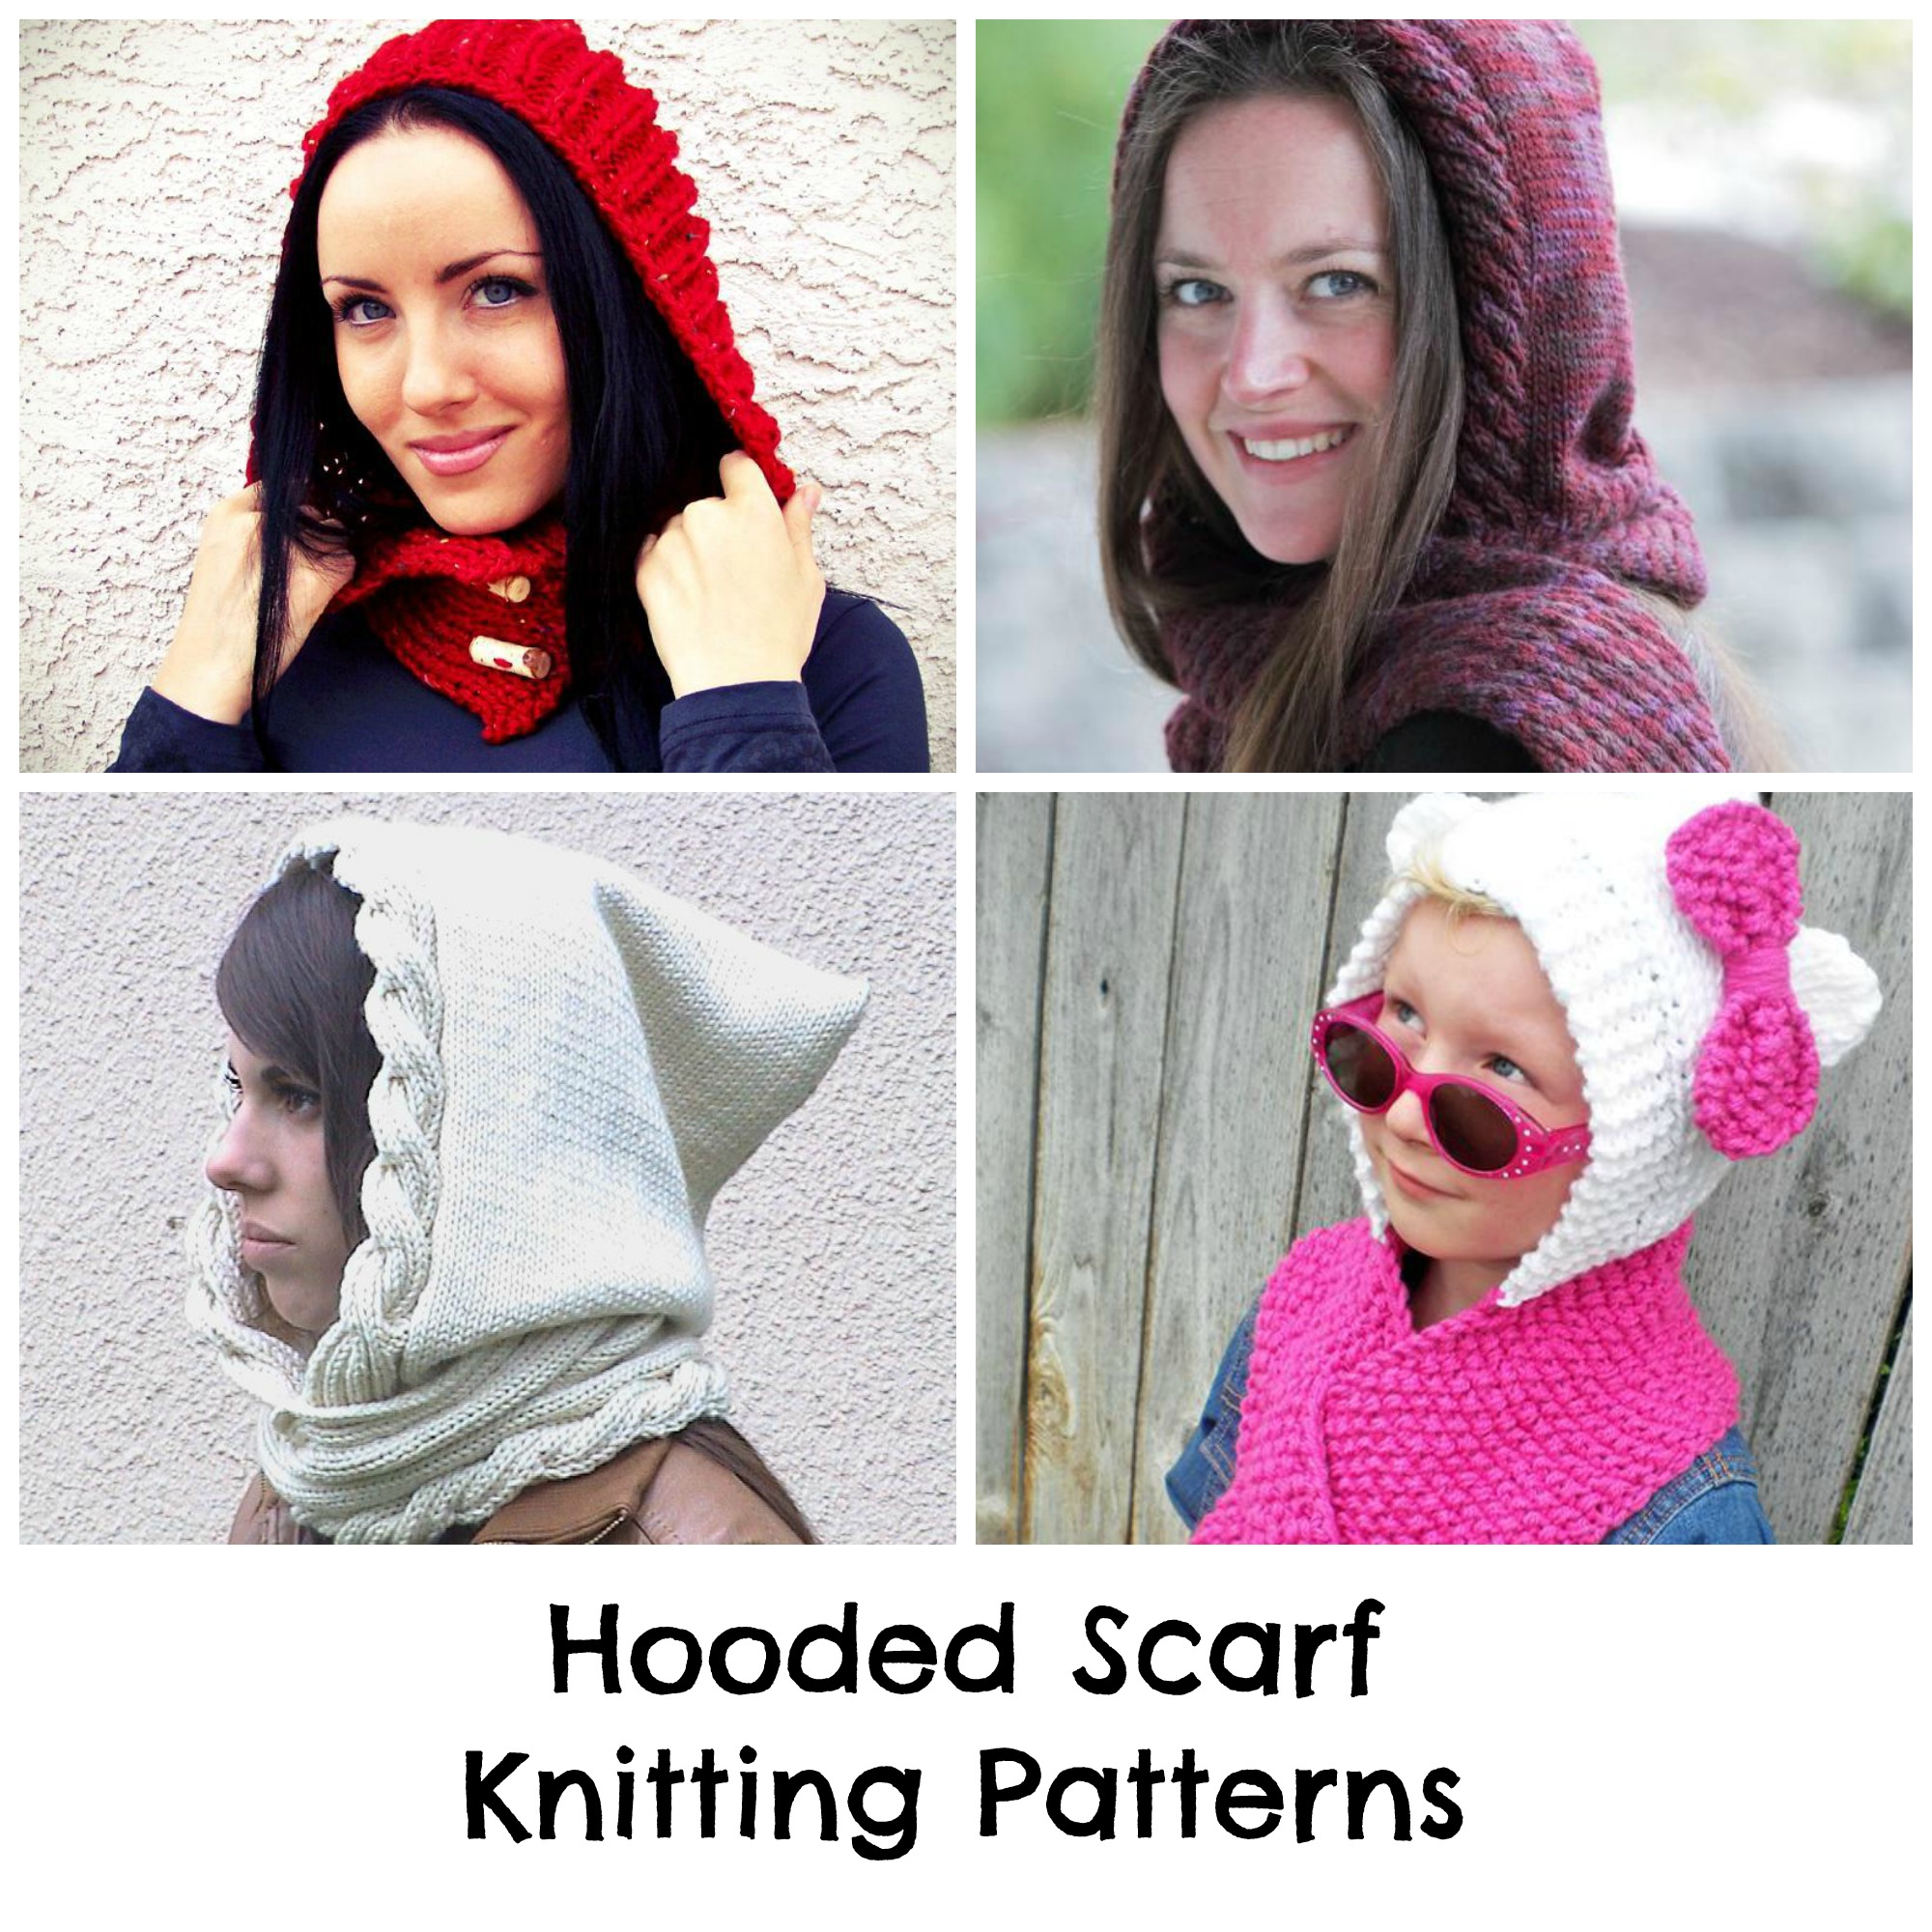 Hooded Scarf Knitting Patterns